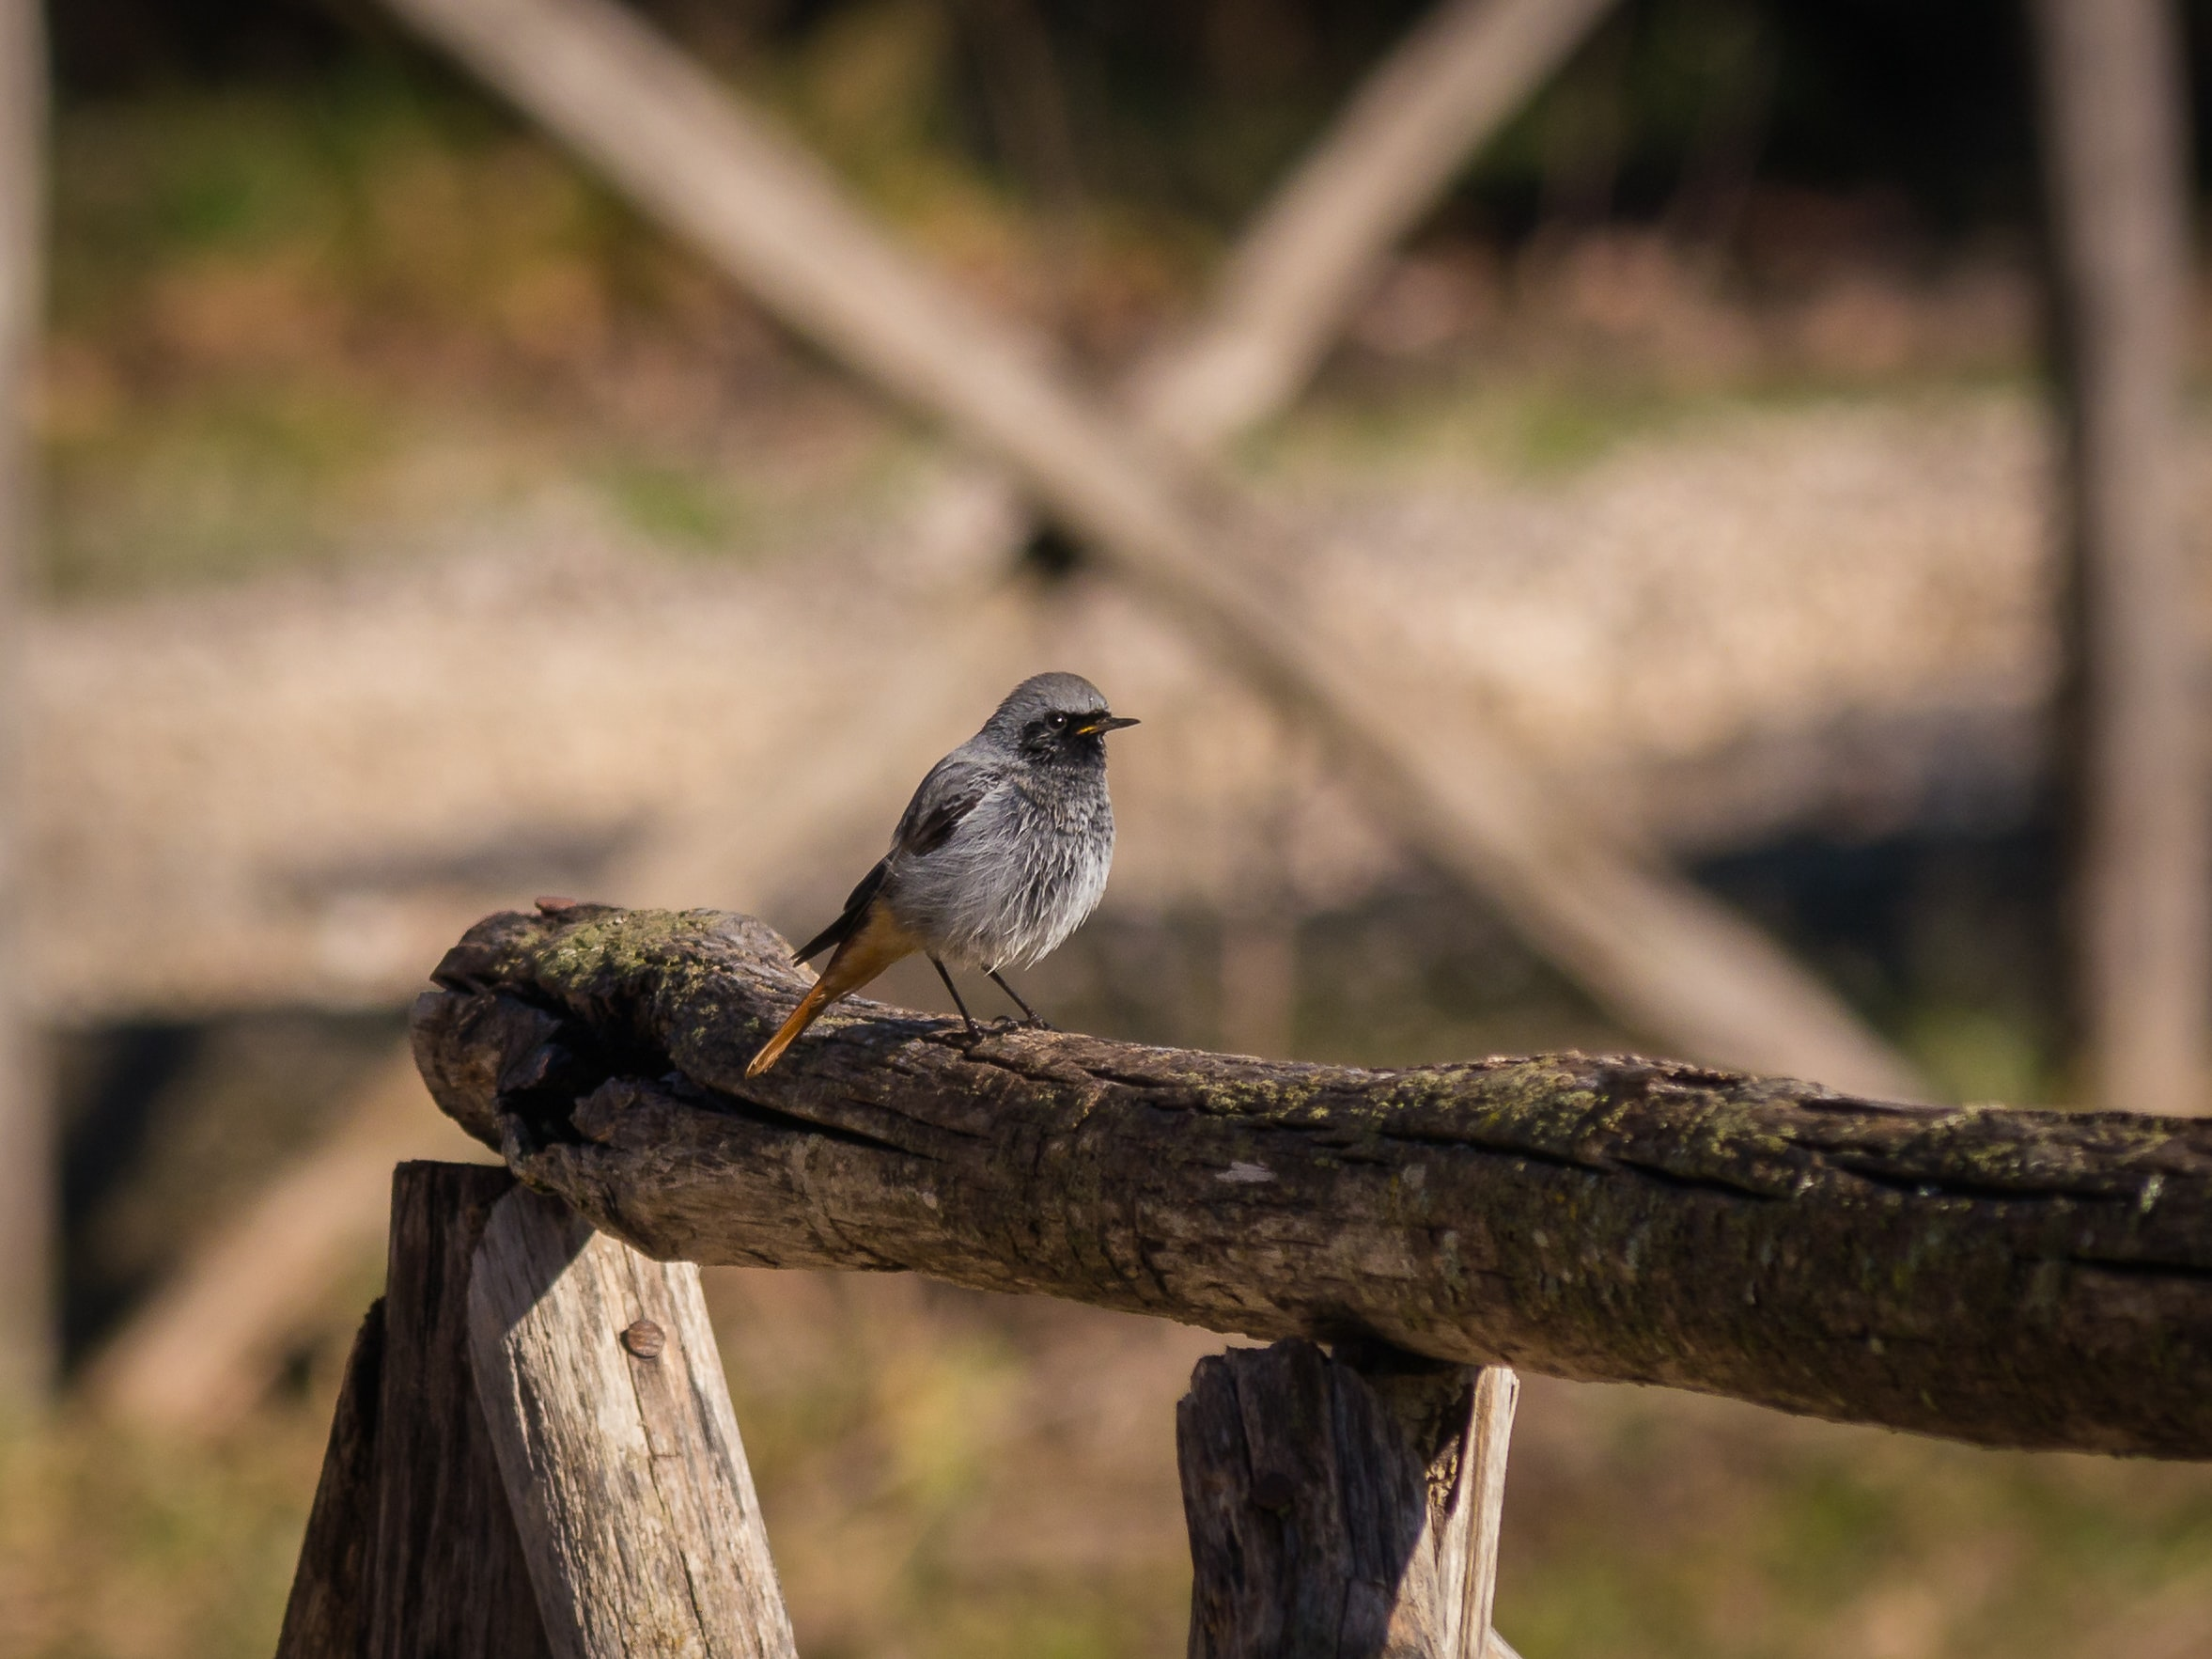 focus photo of gray bird on brown wood during daytime